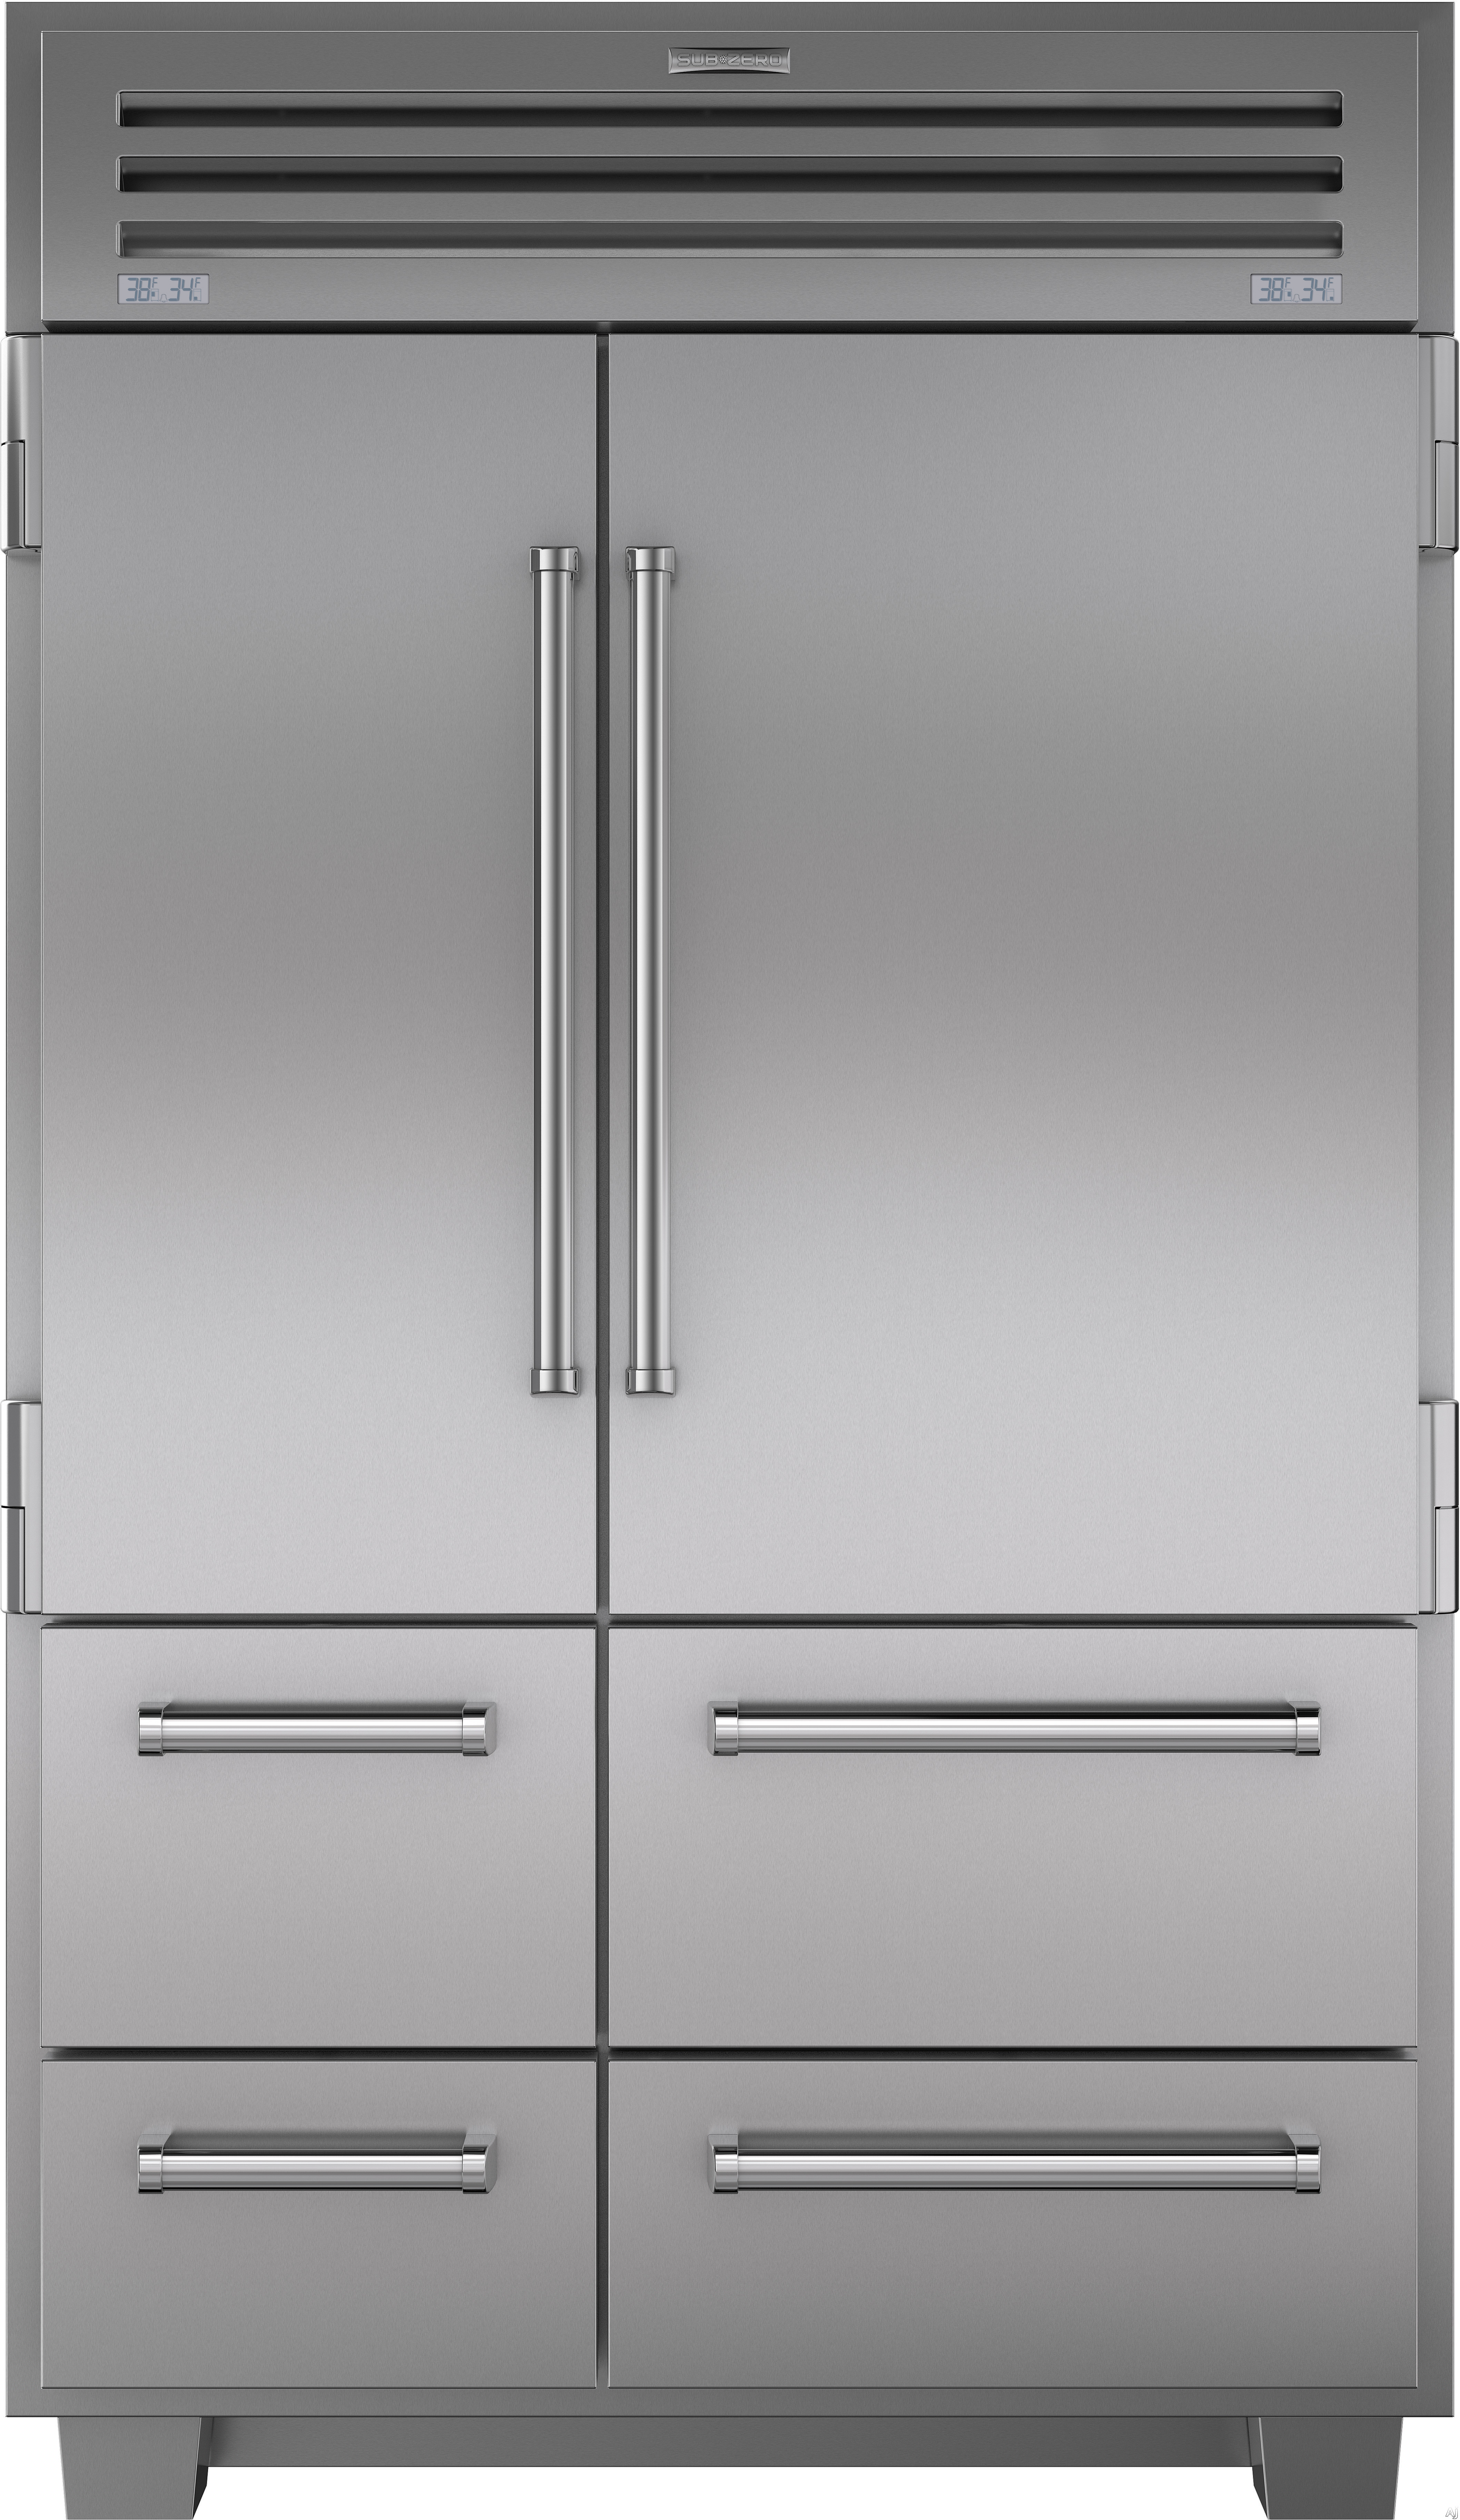 Image Result For Inch French Door Refrigerator